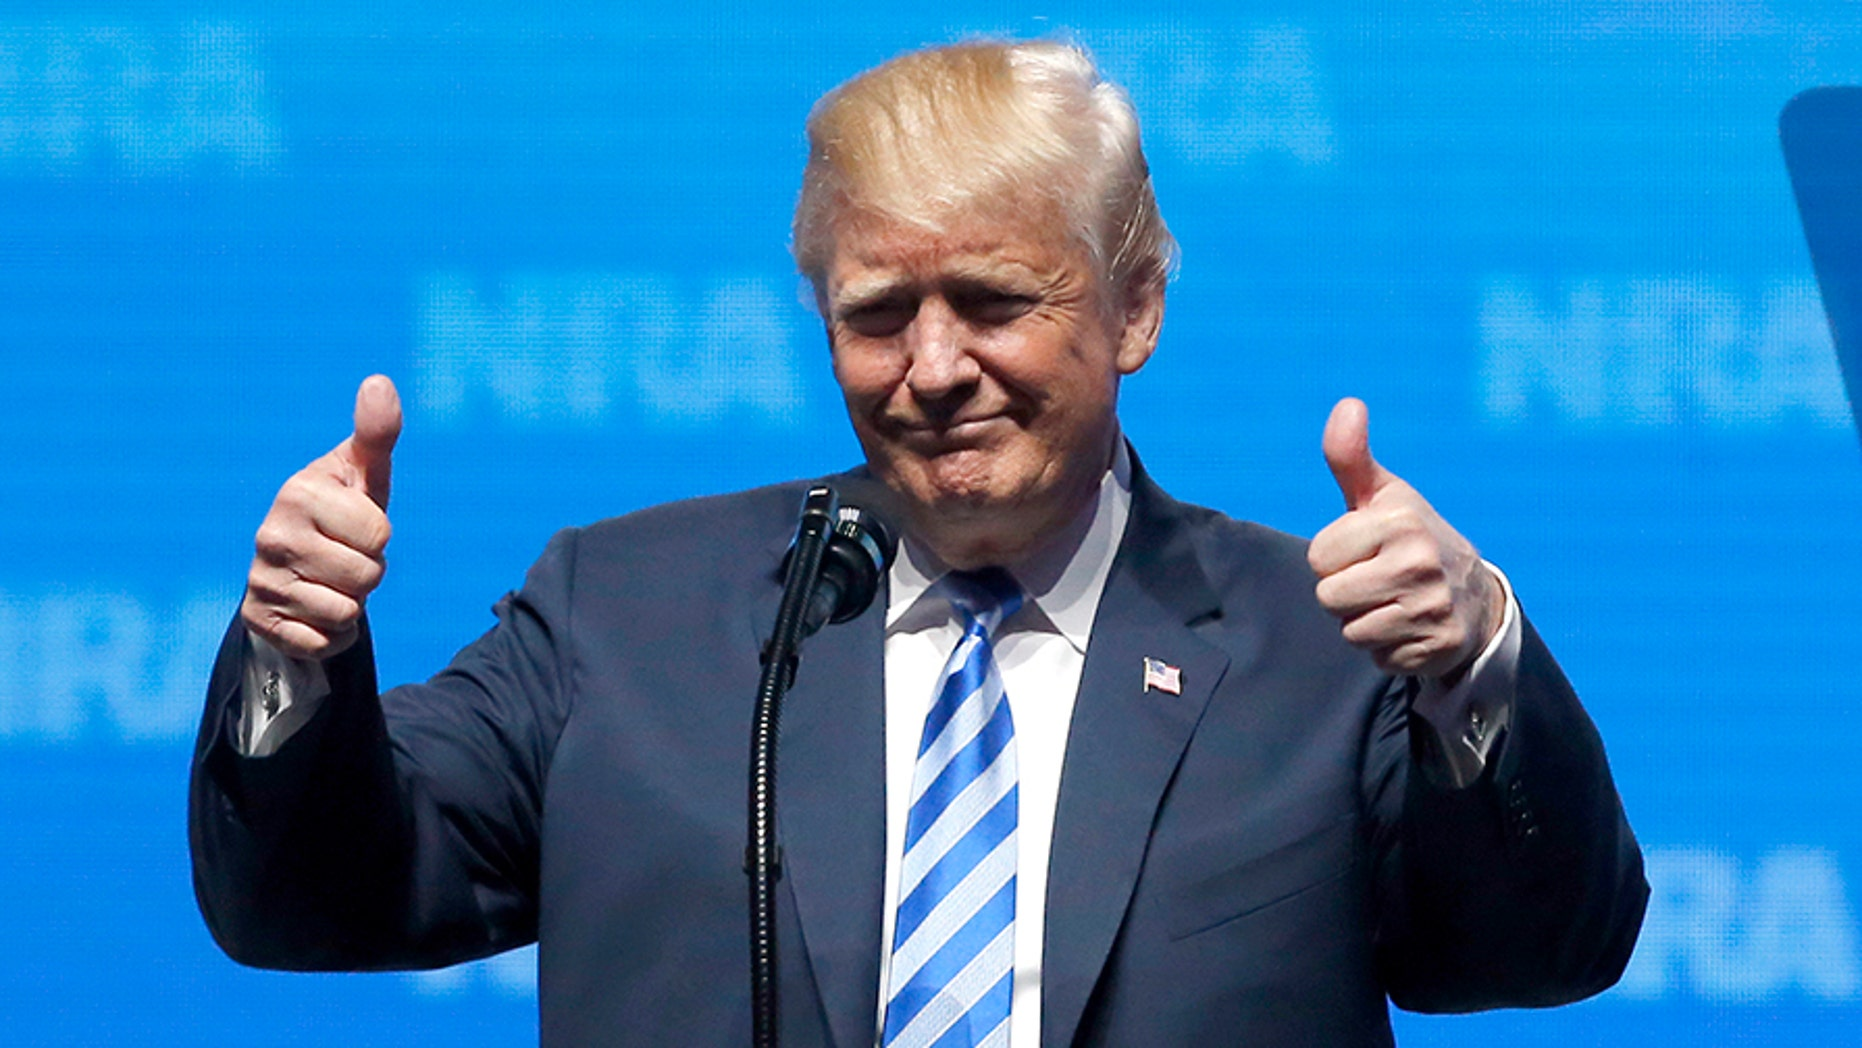 President Donald Trump spoke at the National Rifle Association annual convention in Dallas, Texas on Friday.